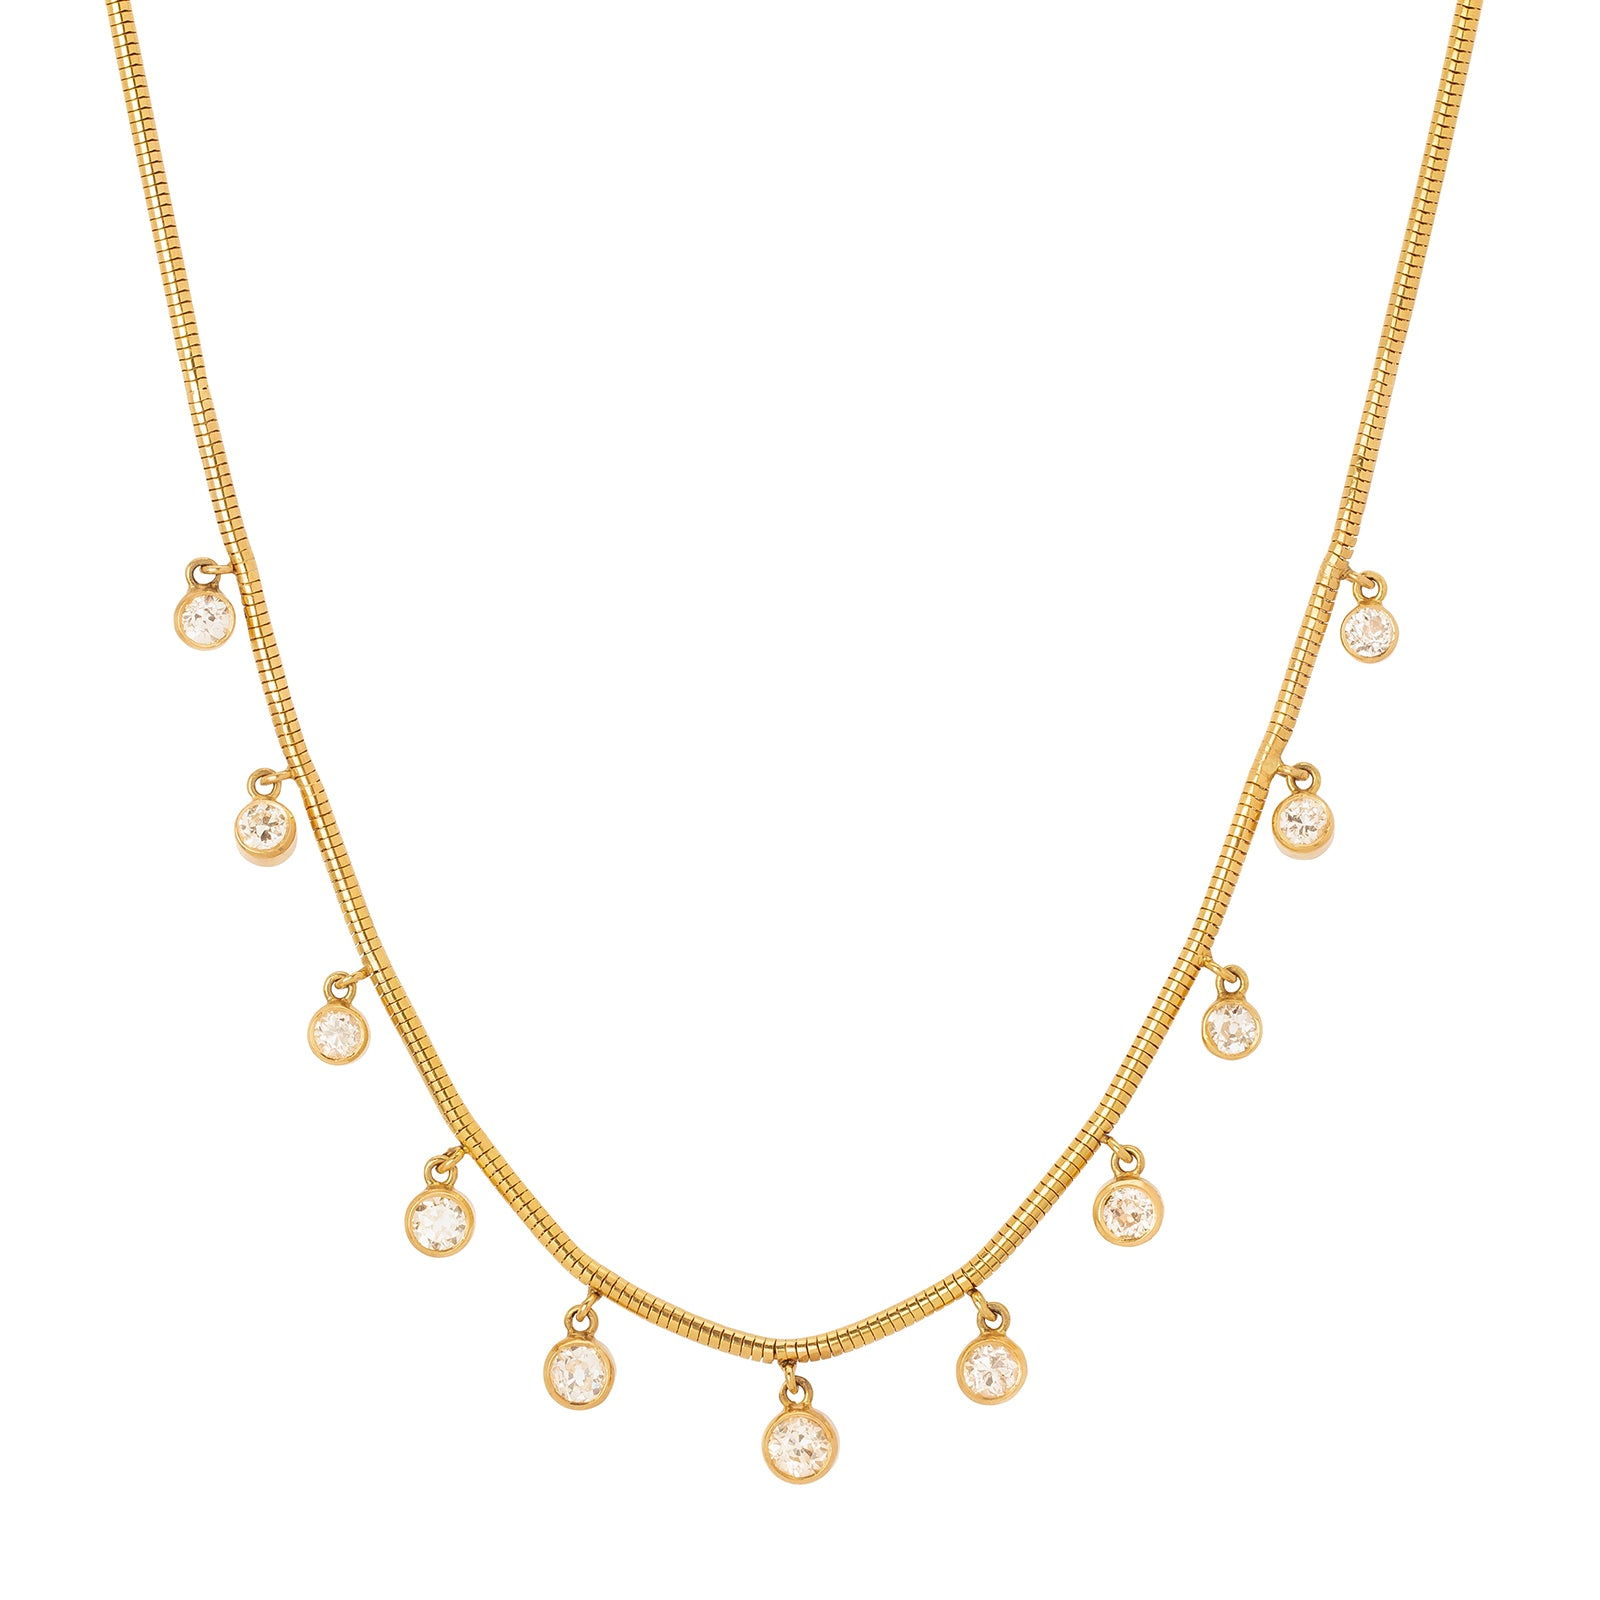 Jenna Blake Simple Diamond Bezel Fringe Necklace - Necklaces - Broken English Jewelry